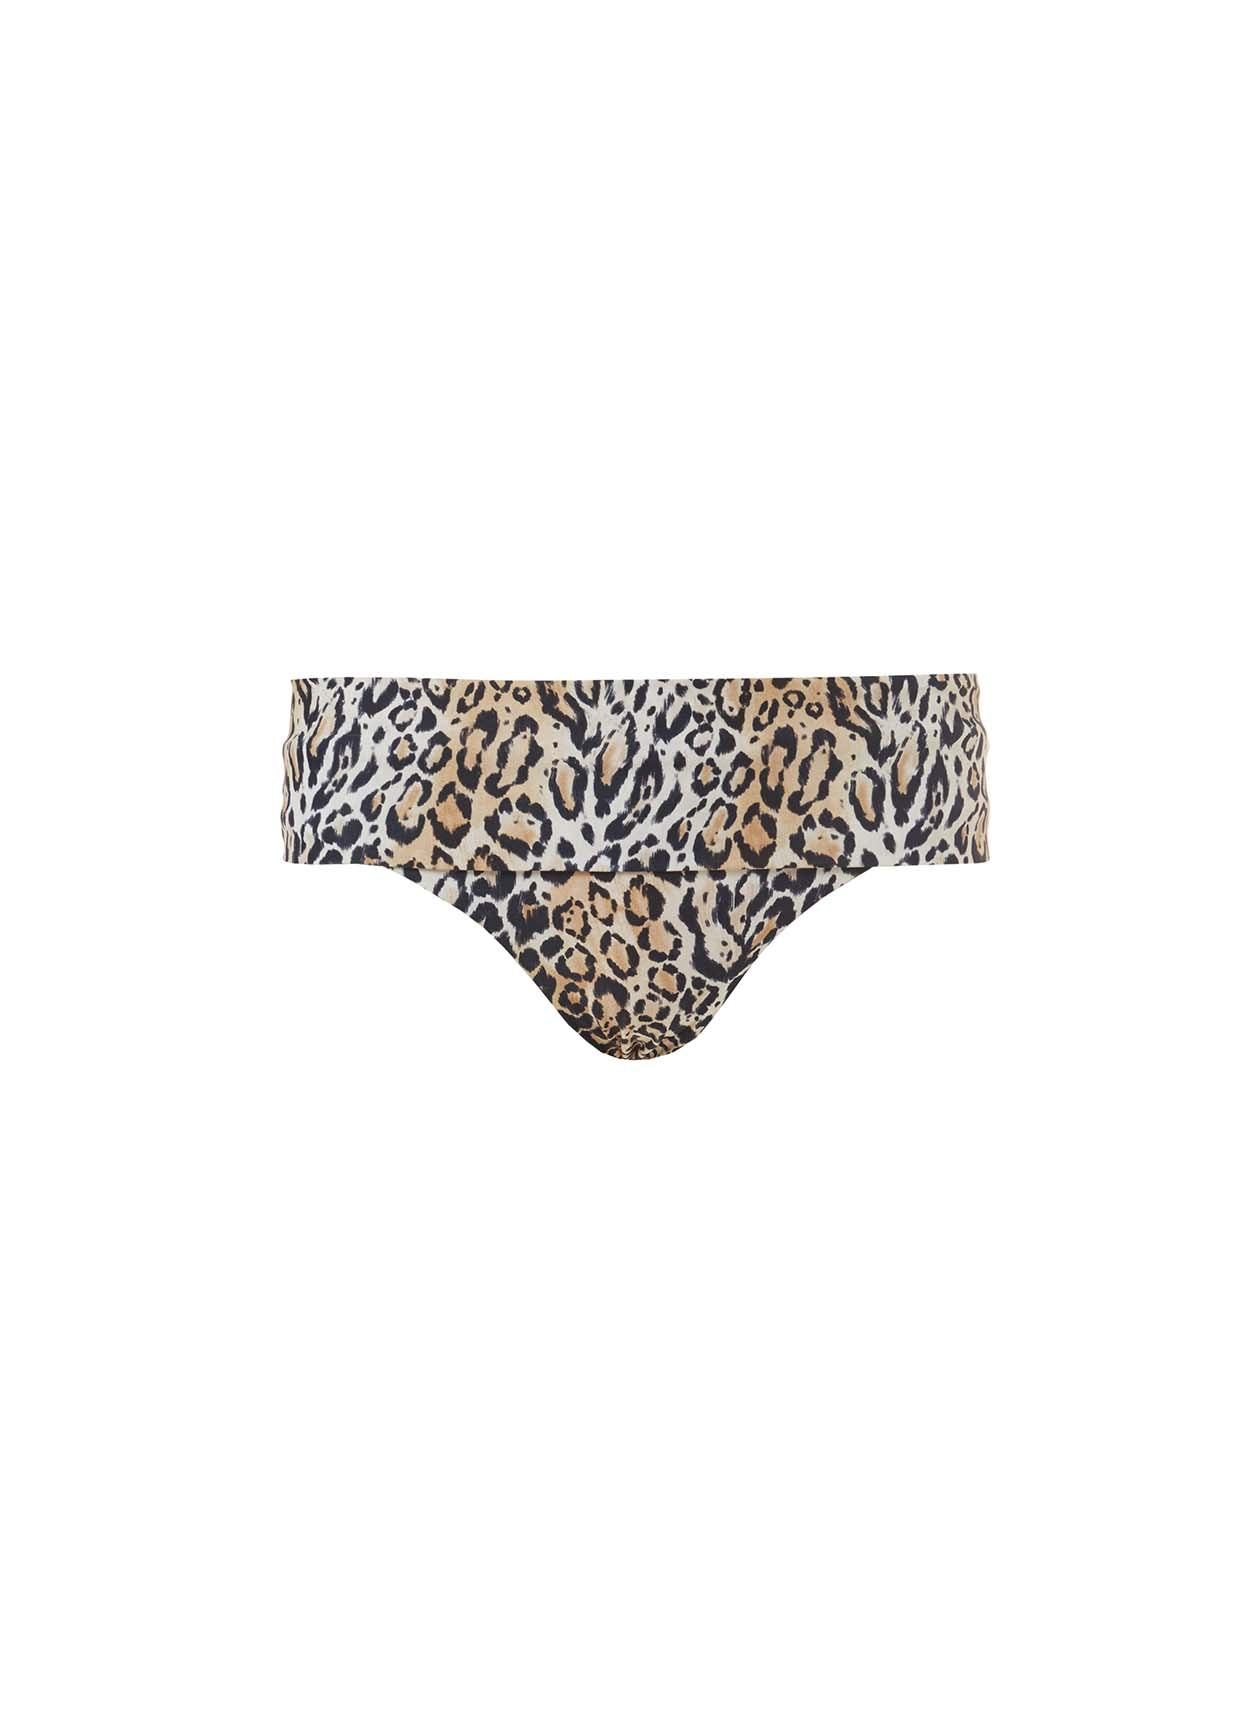 brussels cheetah bikini bottoms